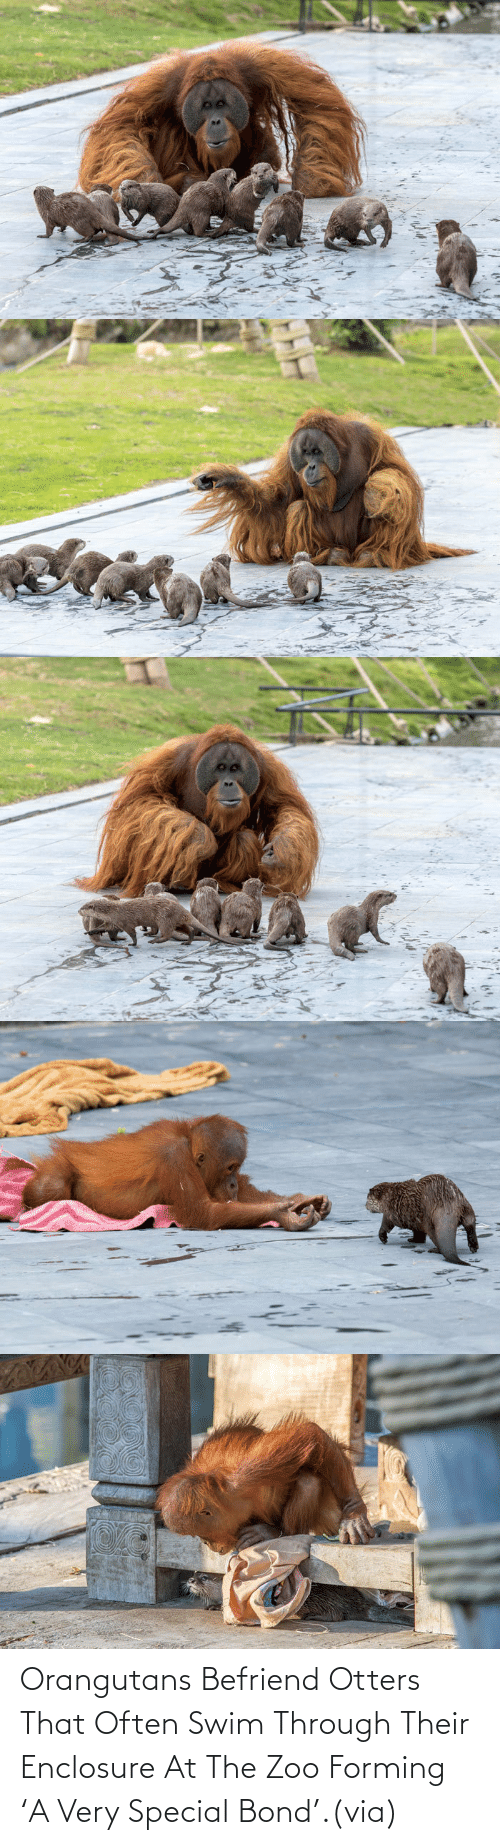 bond: Orangutans Befriend Otters That Often Swim Through Their Enclosure At The Zoo Forming 'A Very Special Bond'.(via)